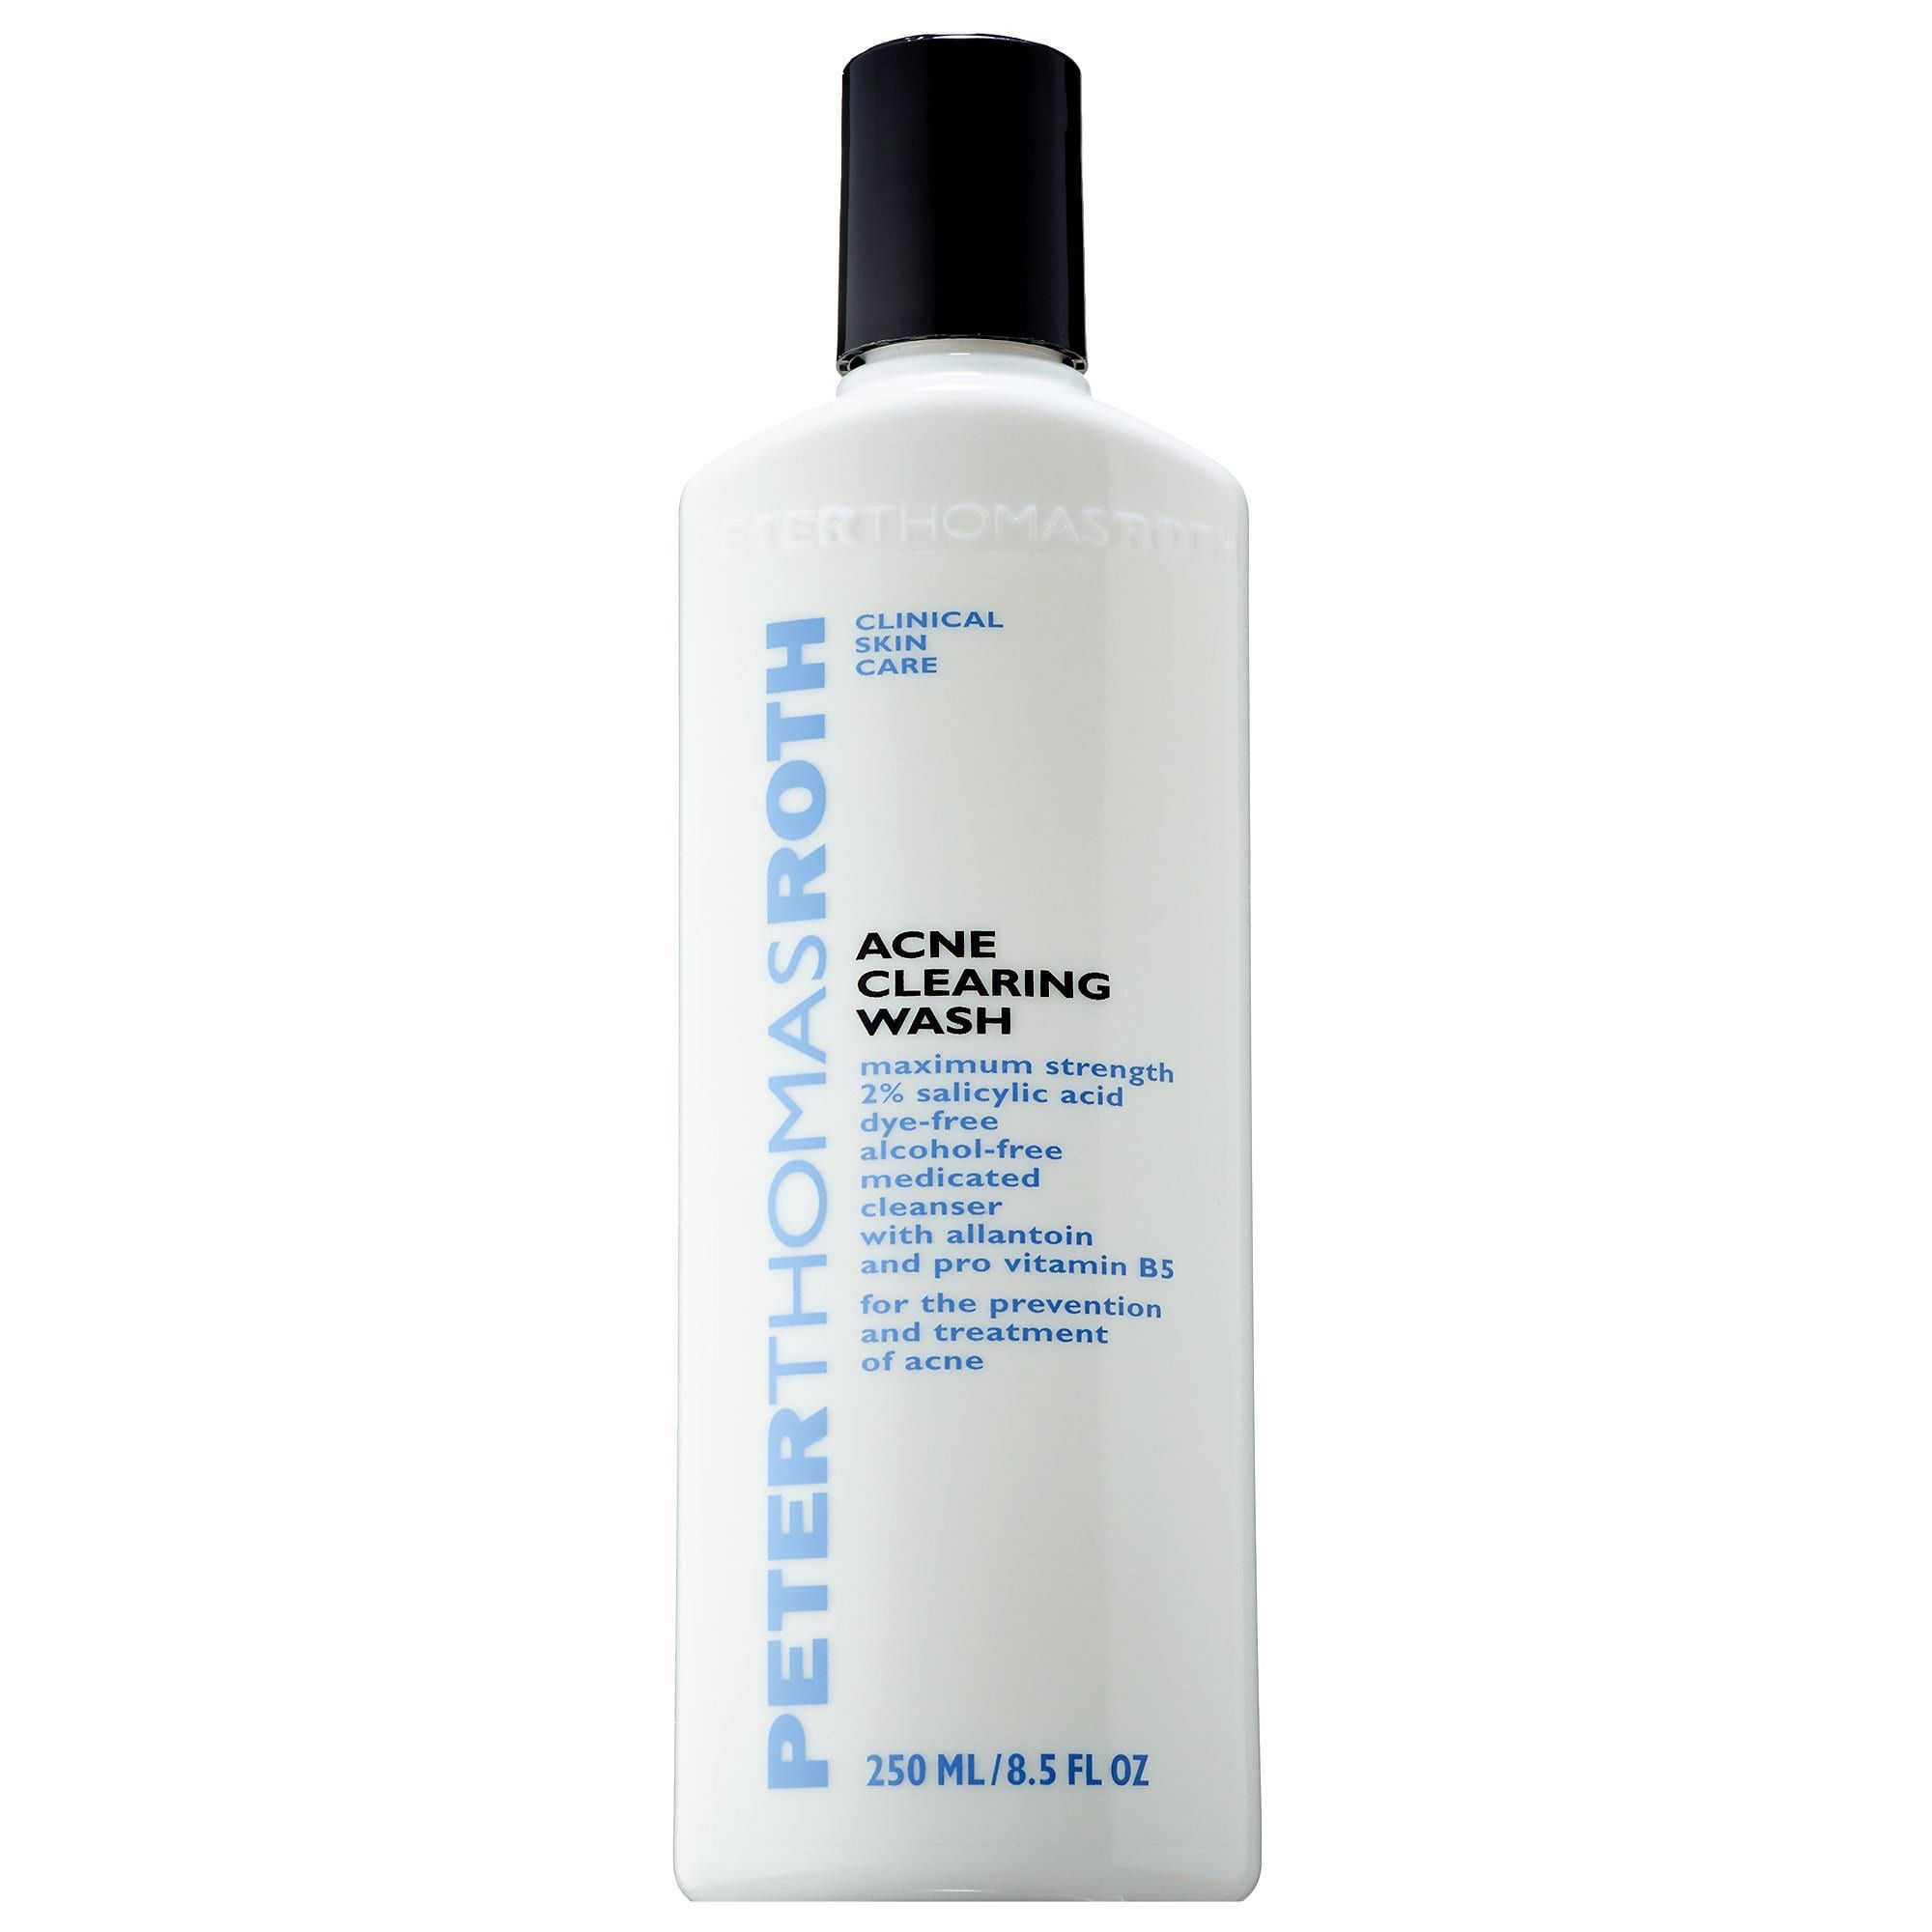 Acne clearing wash peter thomas roth sephora clear